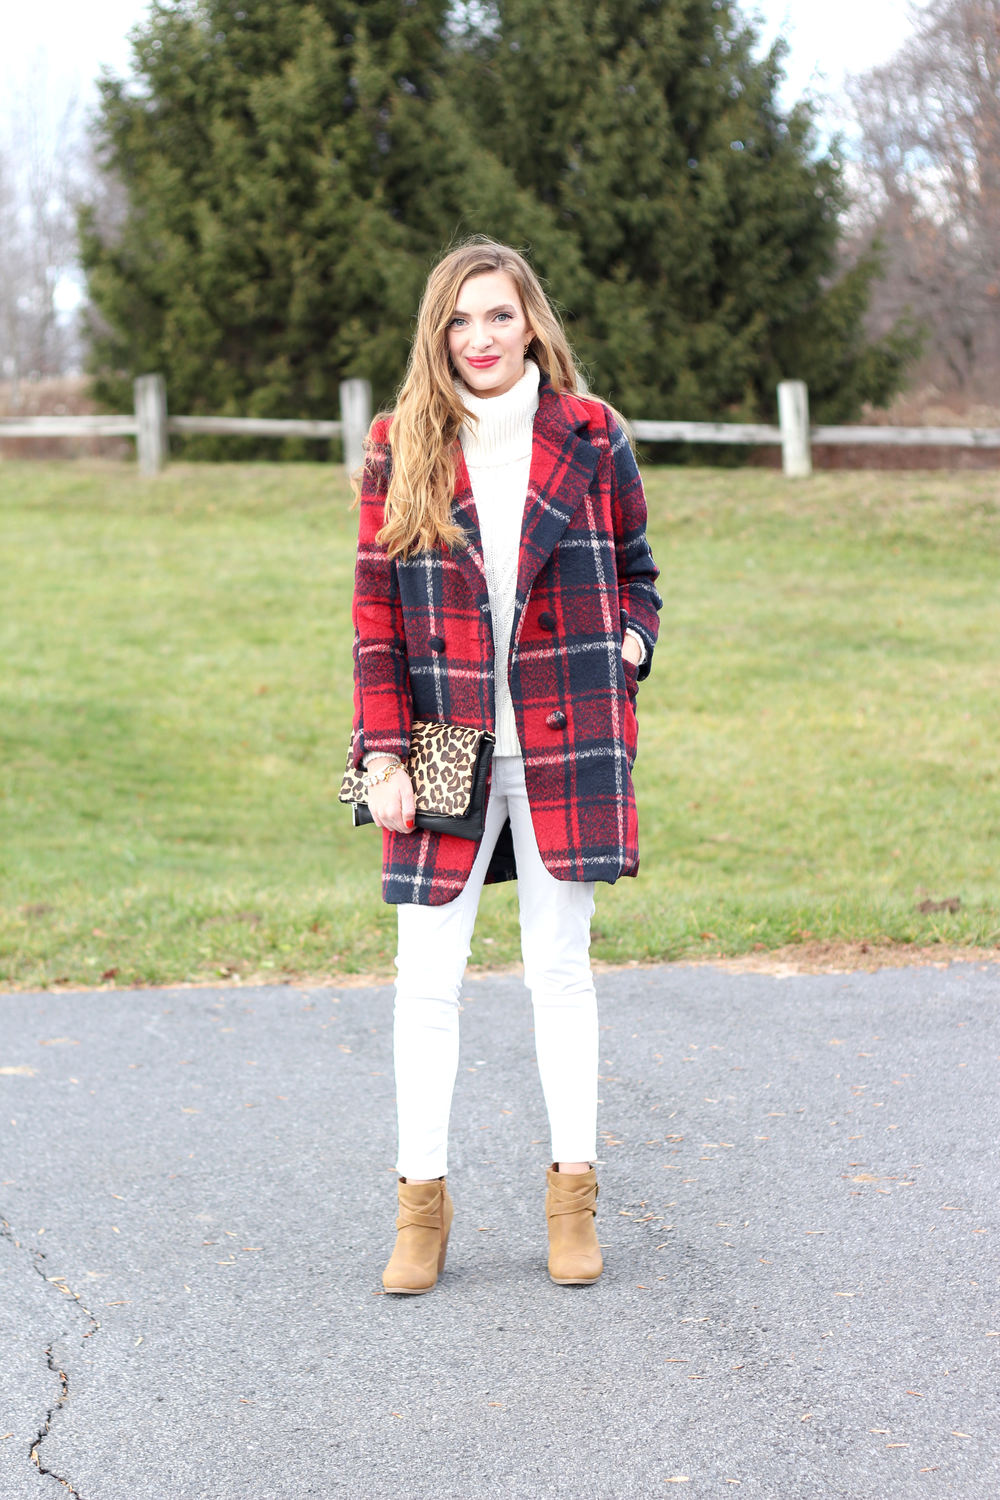 Winter White + Plaid- Enchanting Elegance